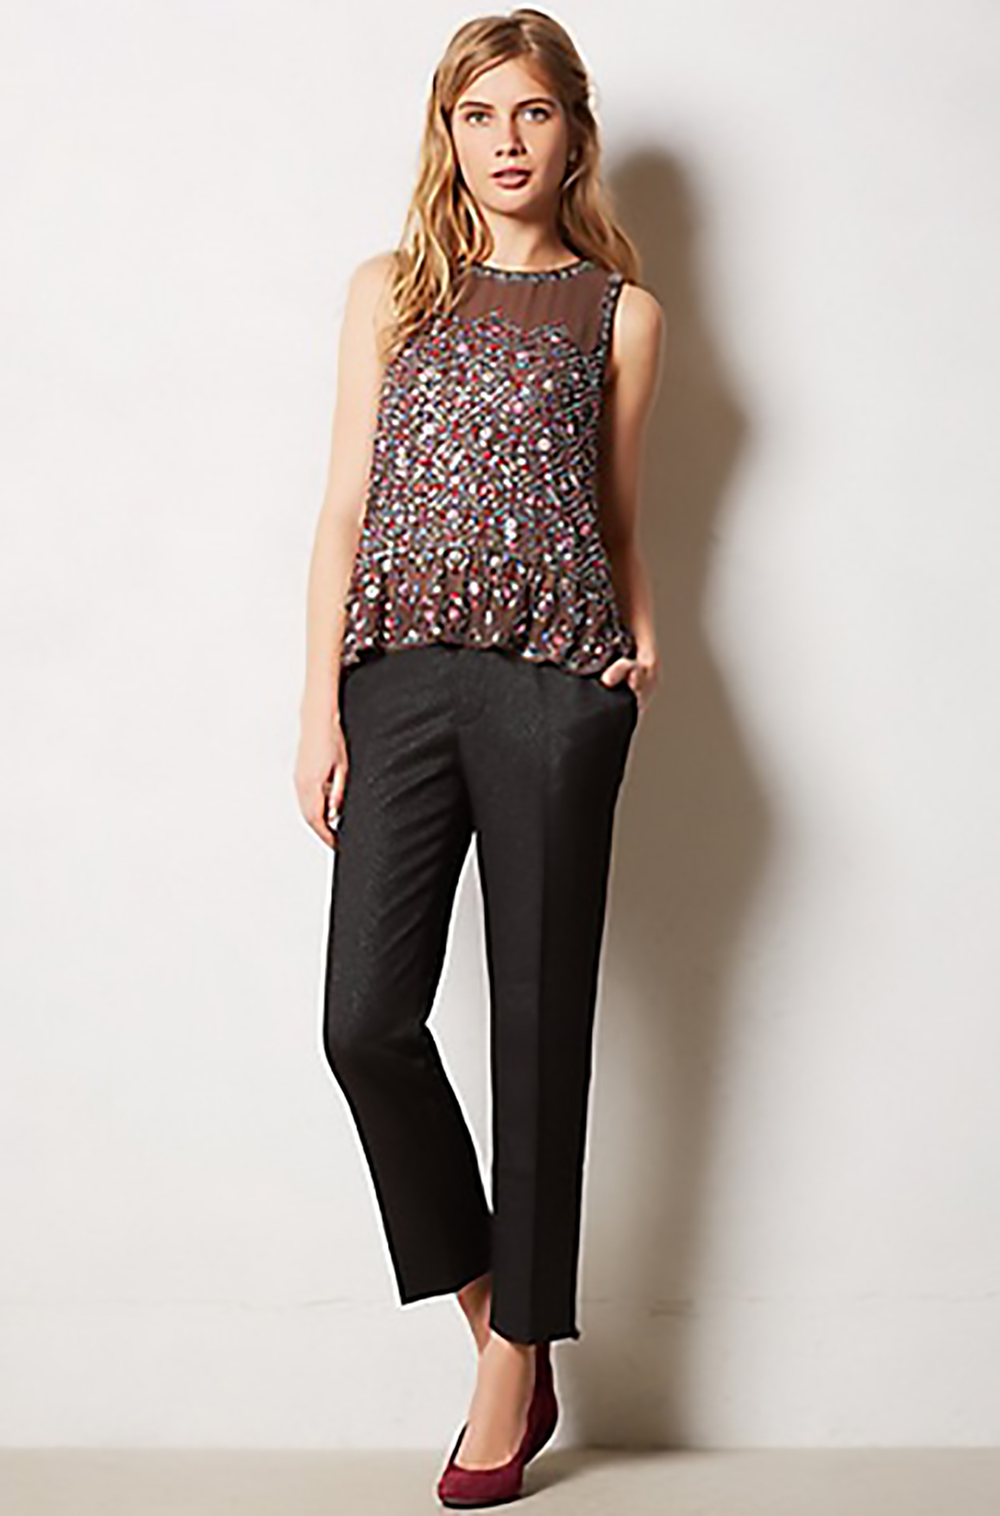 anthropologie merriment beaded top holiday separates 1500.jpg